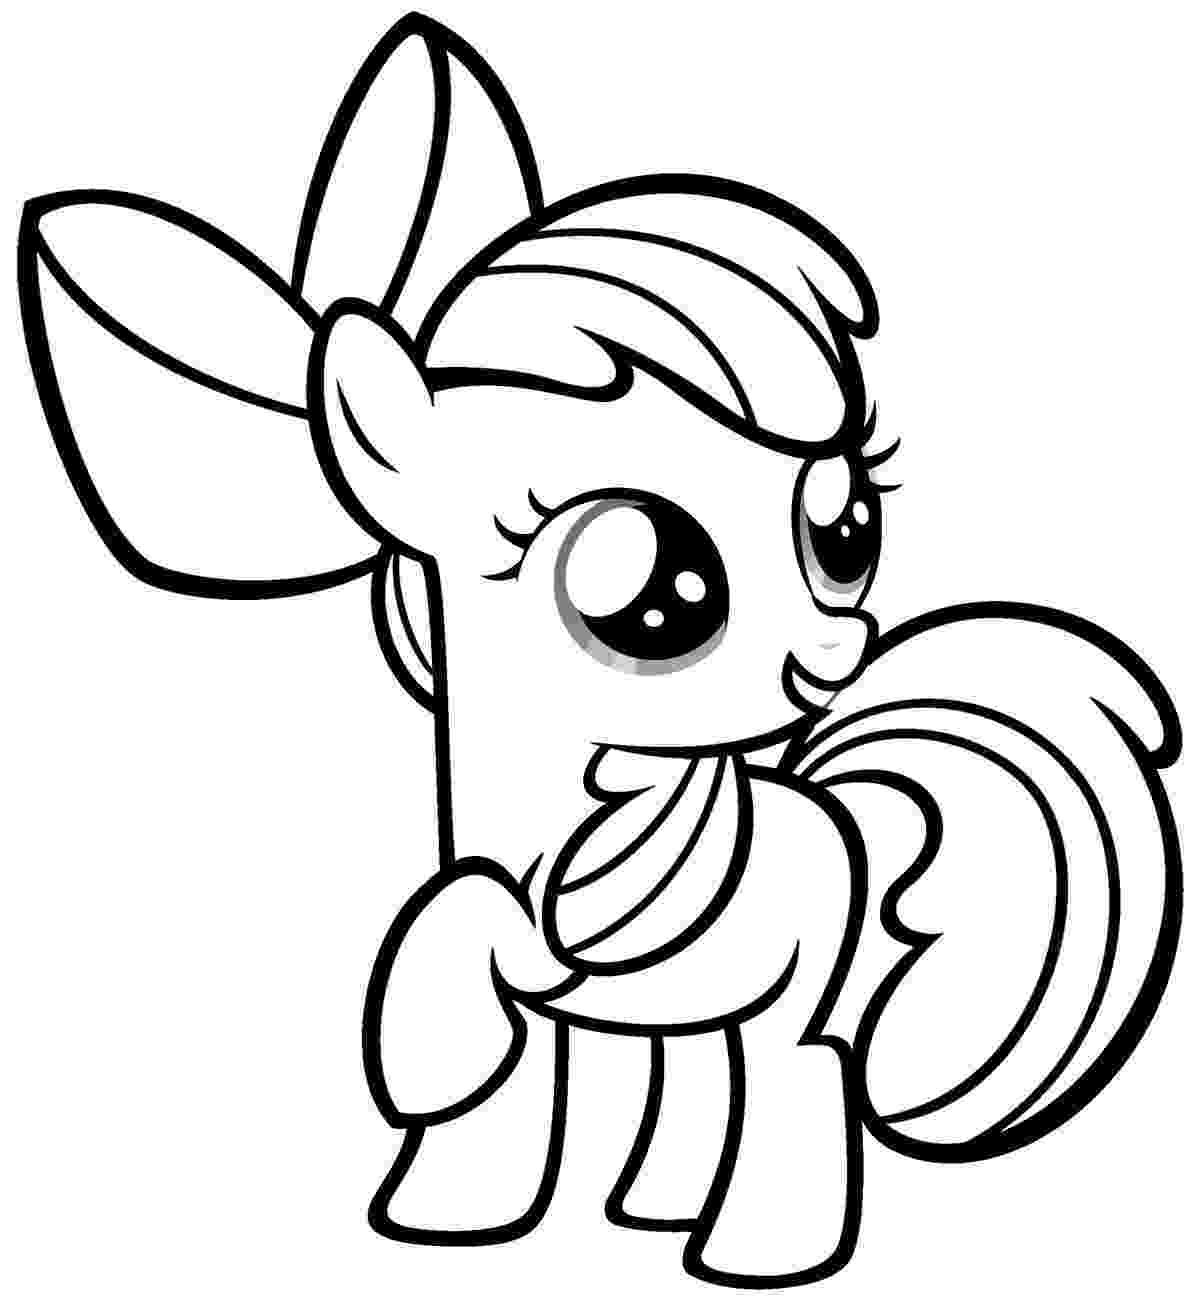 free my little pony coloring pages to print free printable my little pony coloring pages for kids my little pages my coloring to print free pony